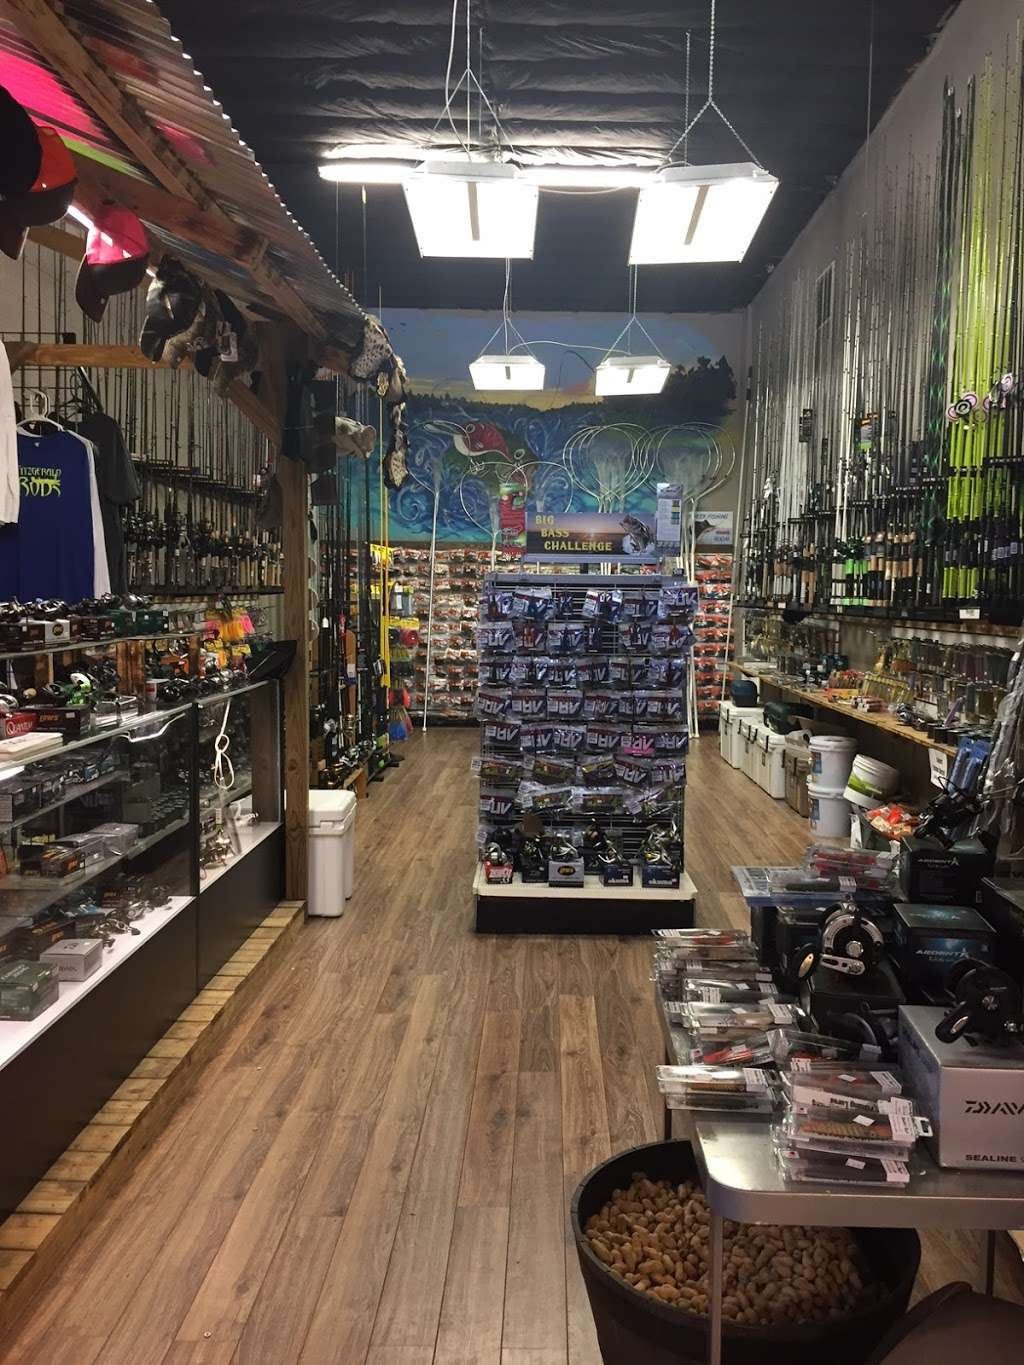 Tackle Pro - store  | Photo 2 of 10 | Address: 1520 S. State Road 15-A, DeLand, FL 32720, USA | Phone: (386) 740-7117